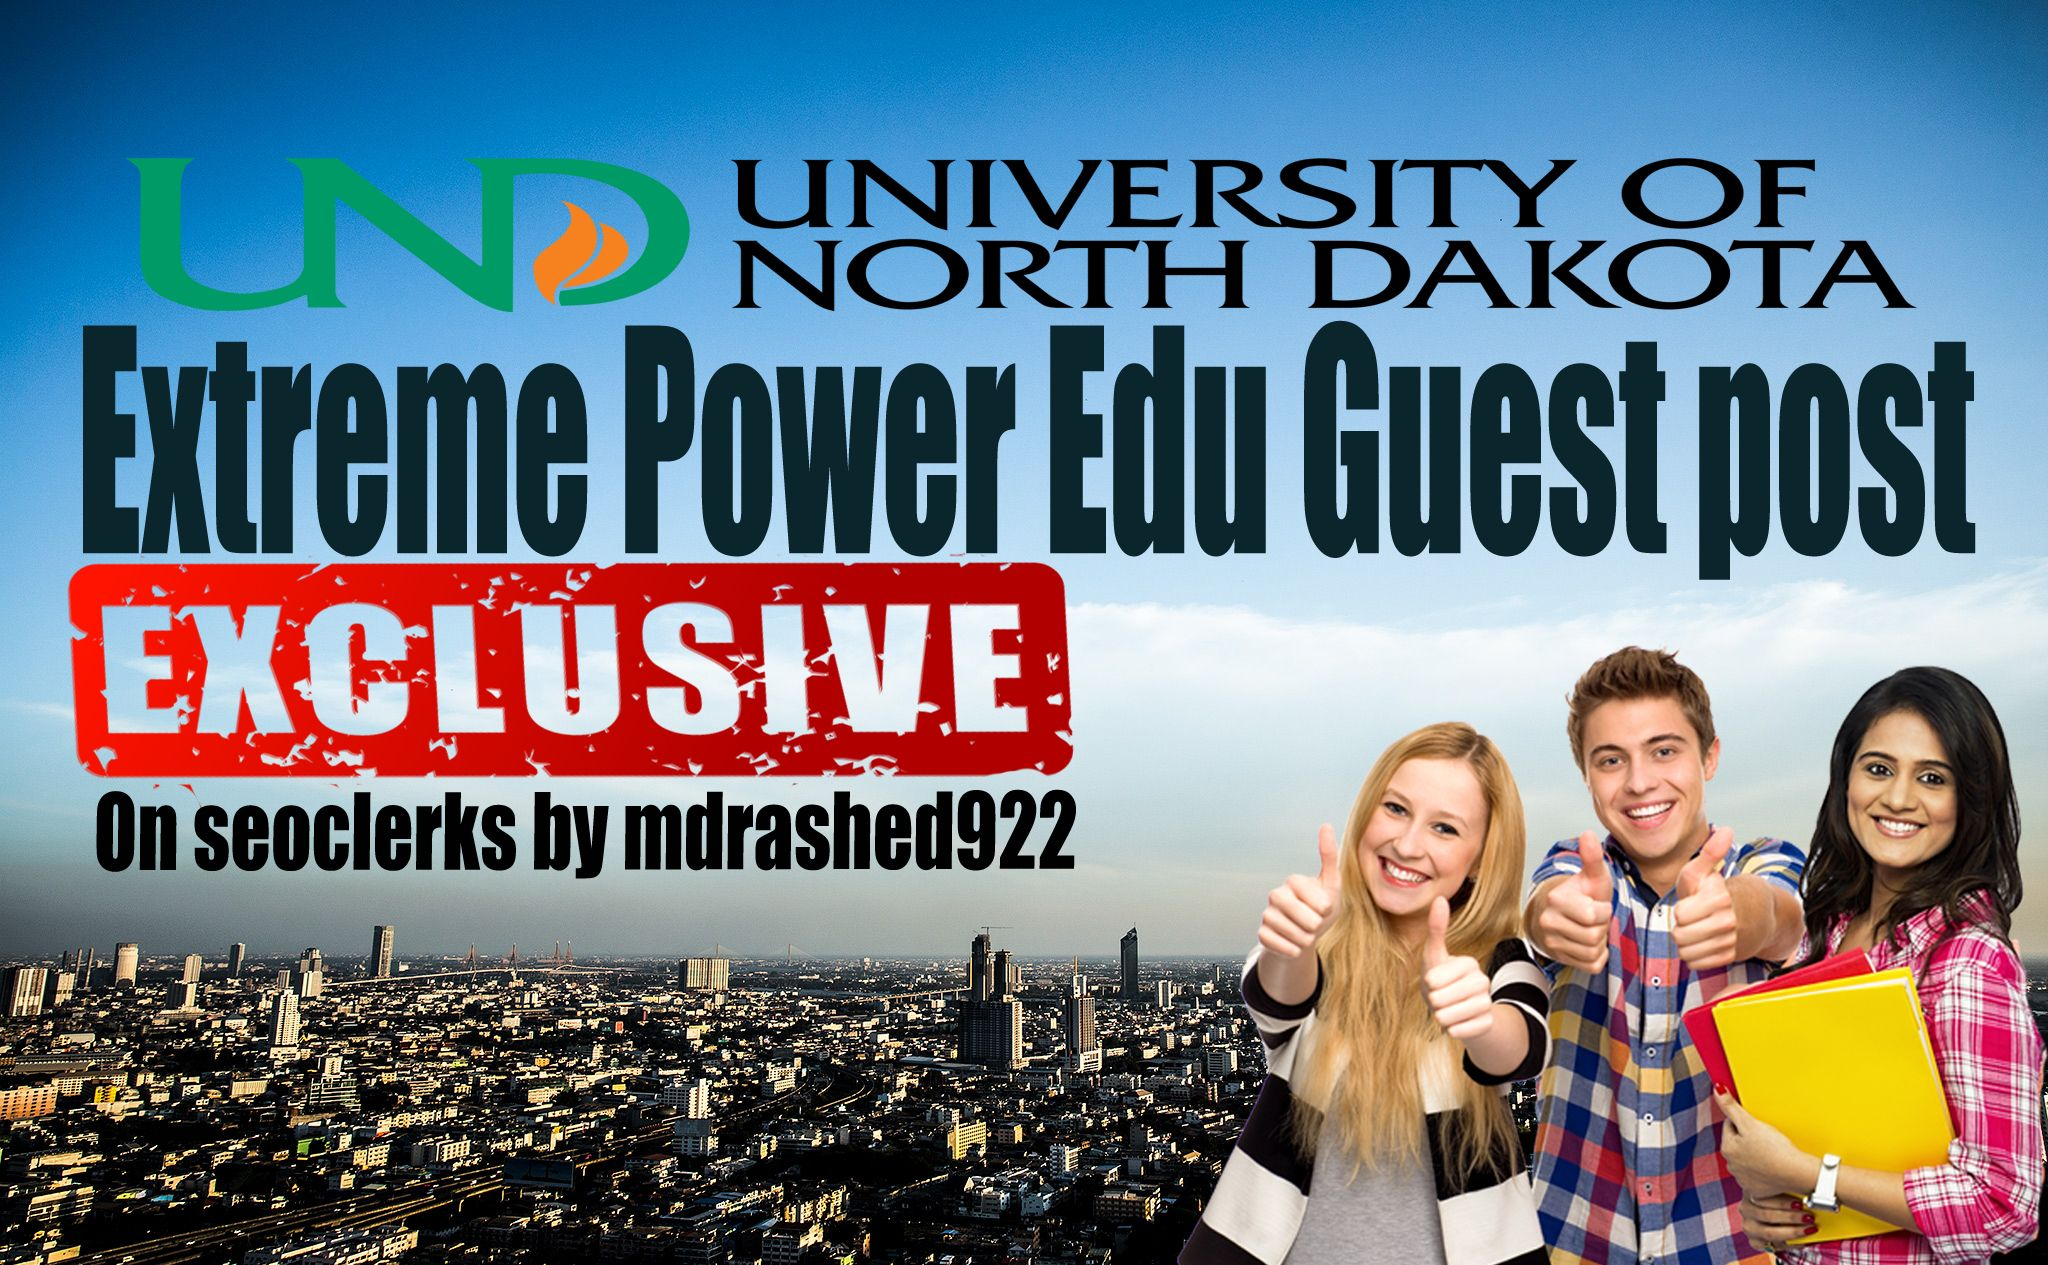 Extreme Power Edu Guest post on University of North Dakota